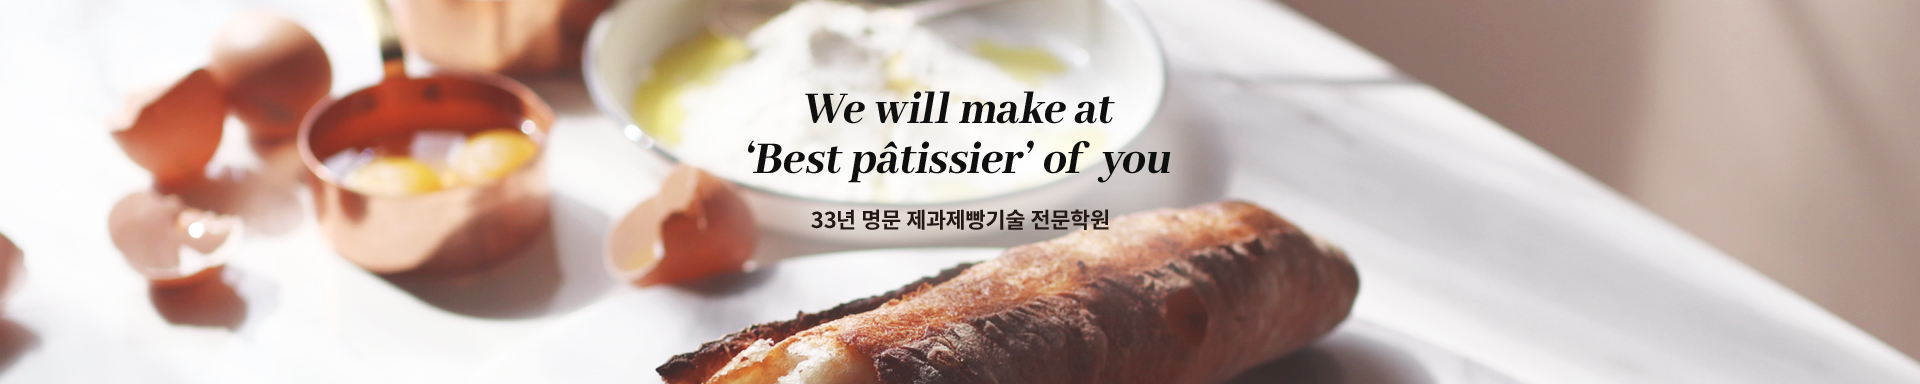 We will make at Best patissier' of you 33년 명문 제과제빵기술 전문학원